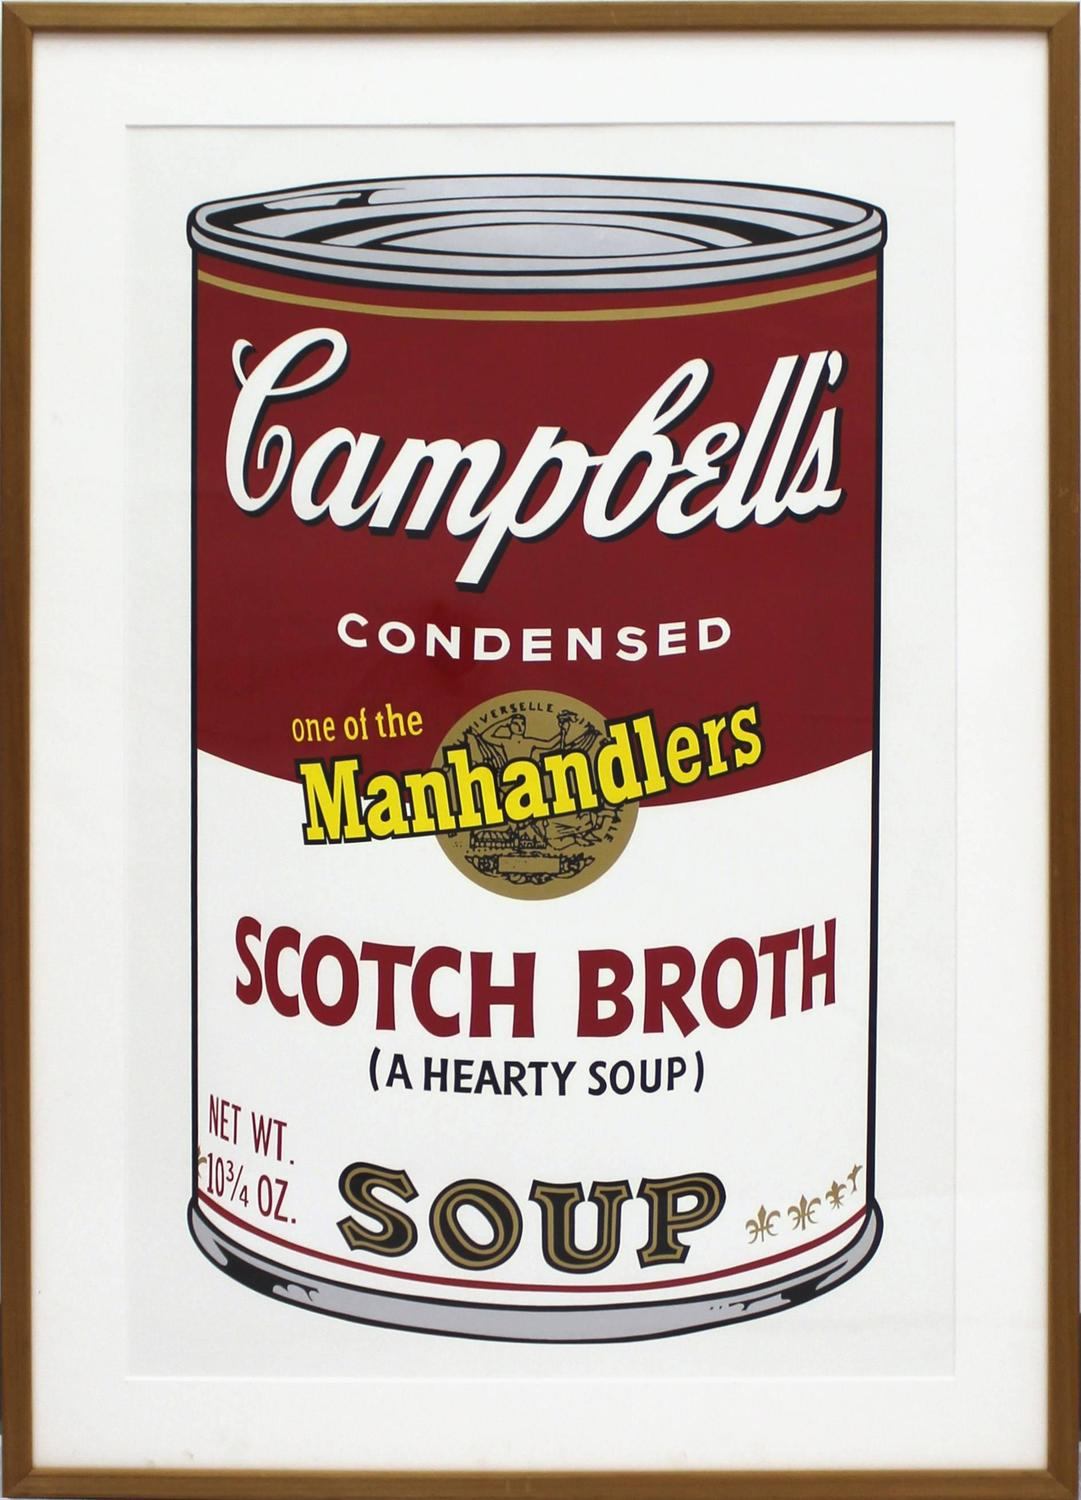 Andy Warhol - Campbell's Soup II.55 (Scotch Broth) For Sale at 1stdibs